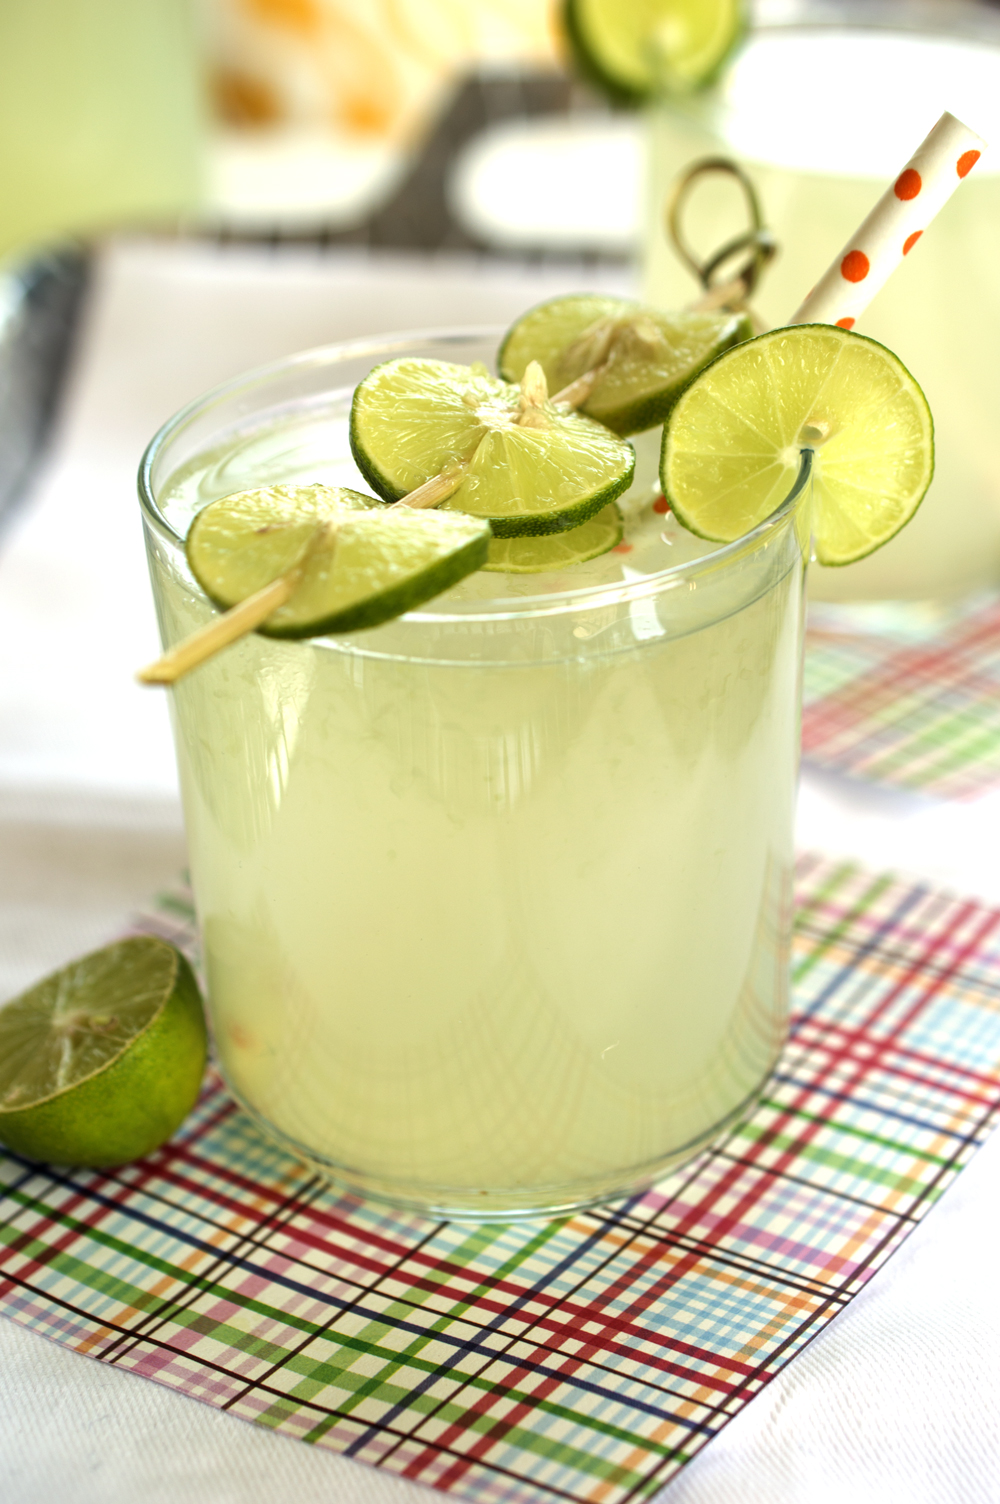 Easy Homemade Limeade 3 Ingredients Chef Savvy